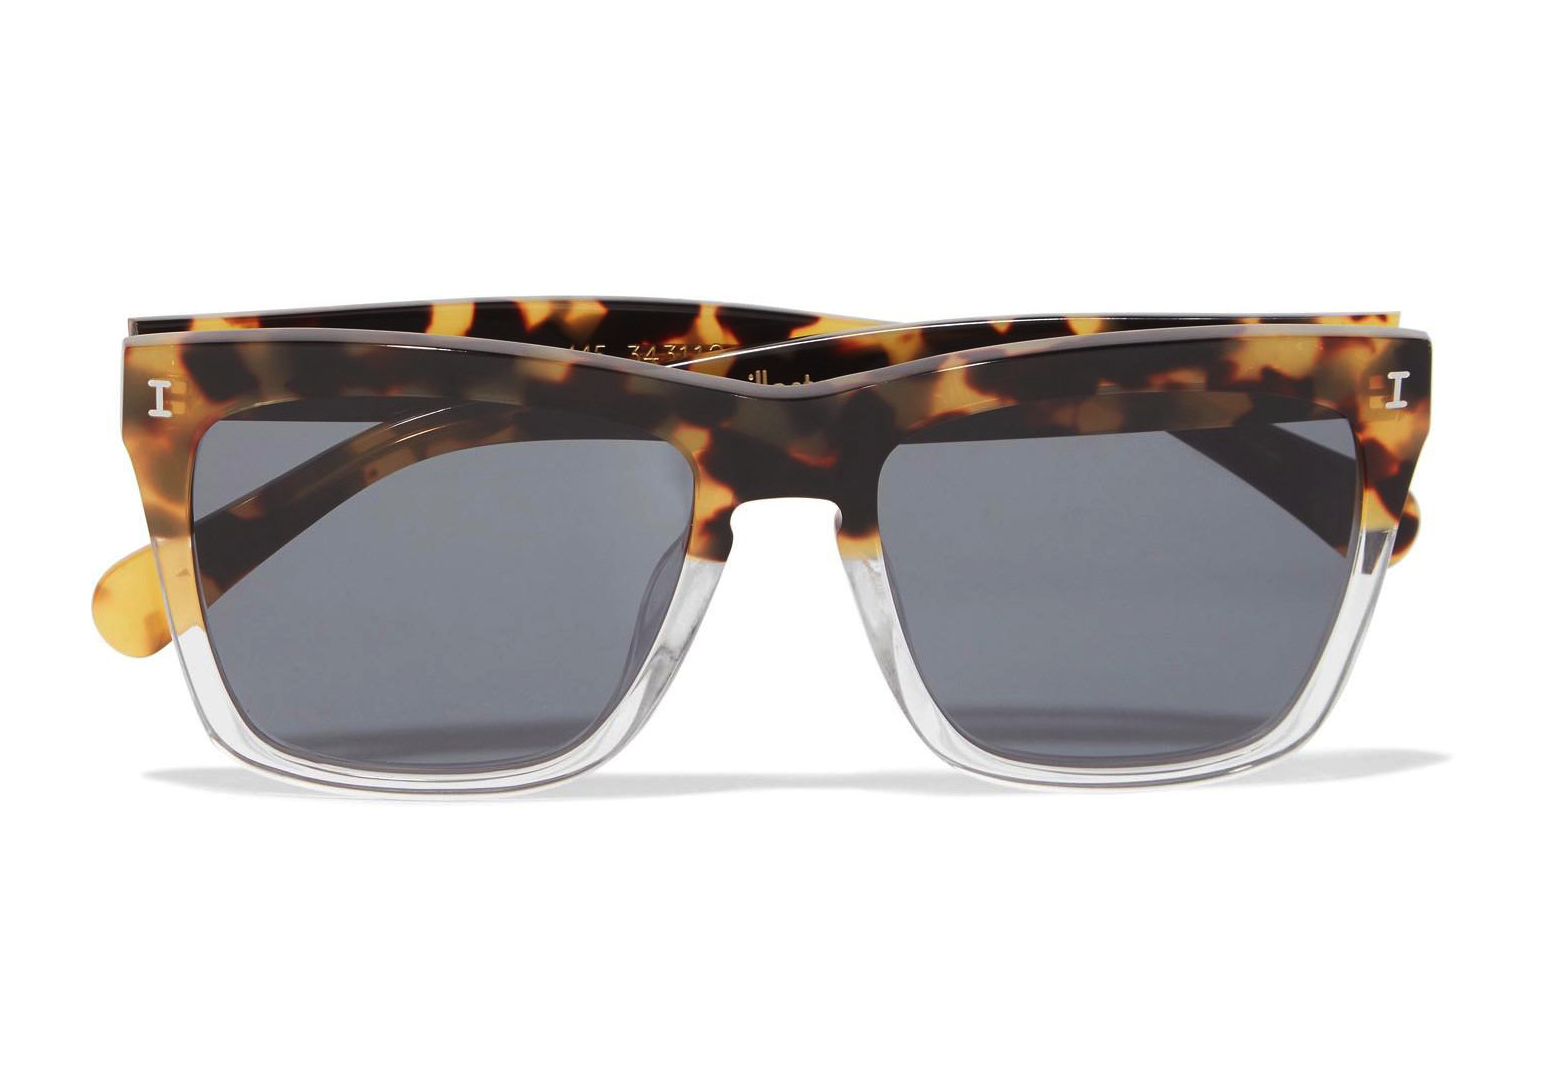 Illesteva Los Feliz Square Frame Sunglasses in Tortoiseshell - Weekly Finds featured by North Carolina style blogger, Glitter, Inc.